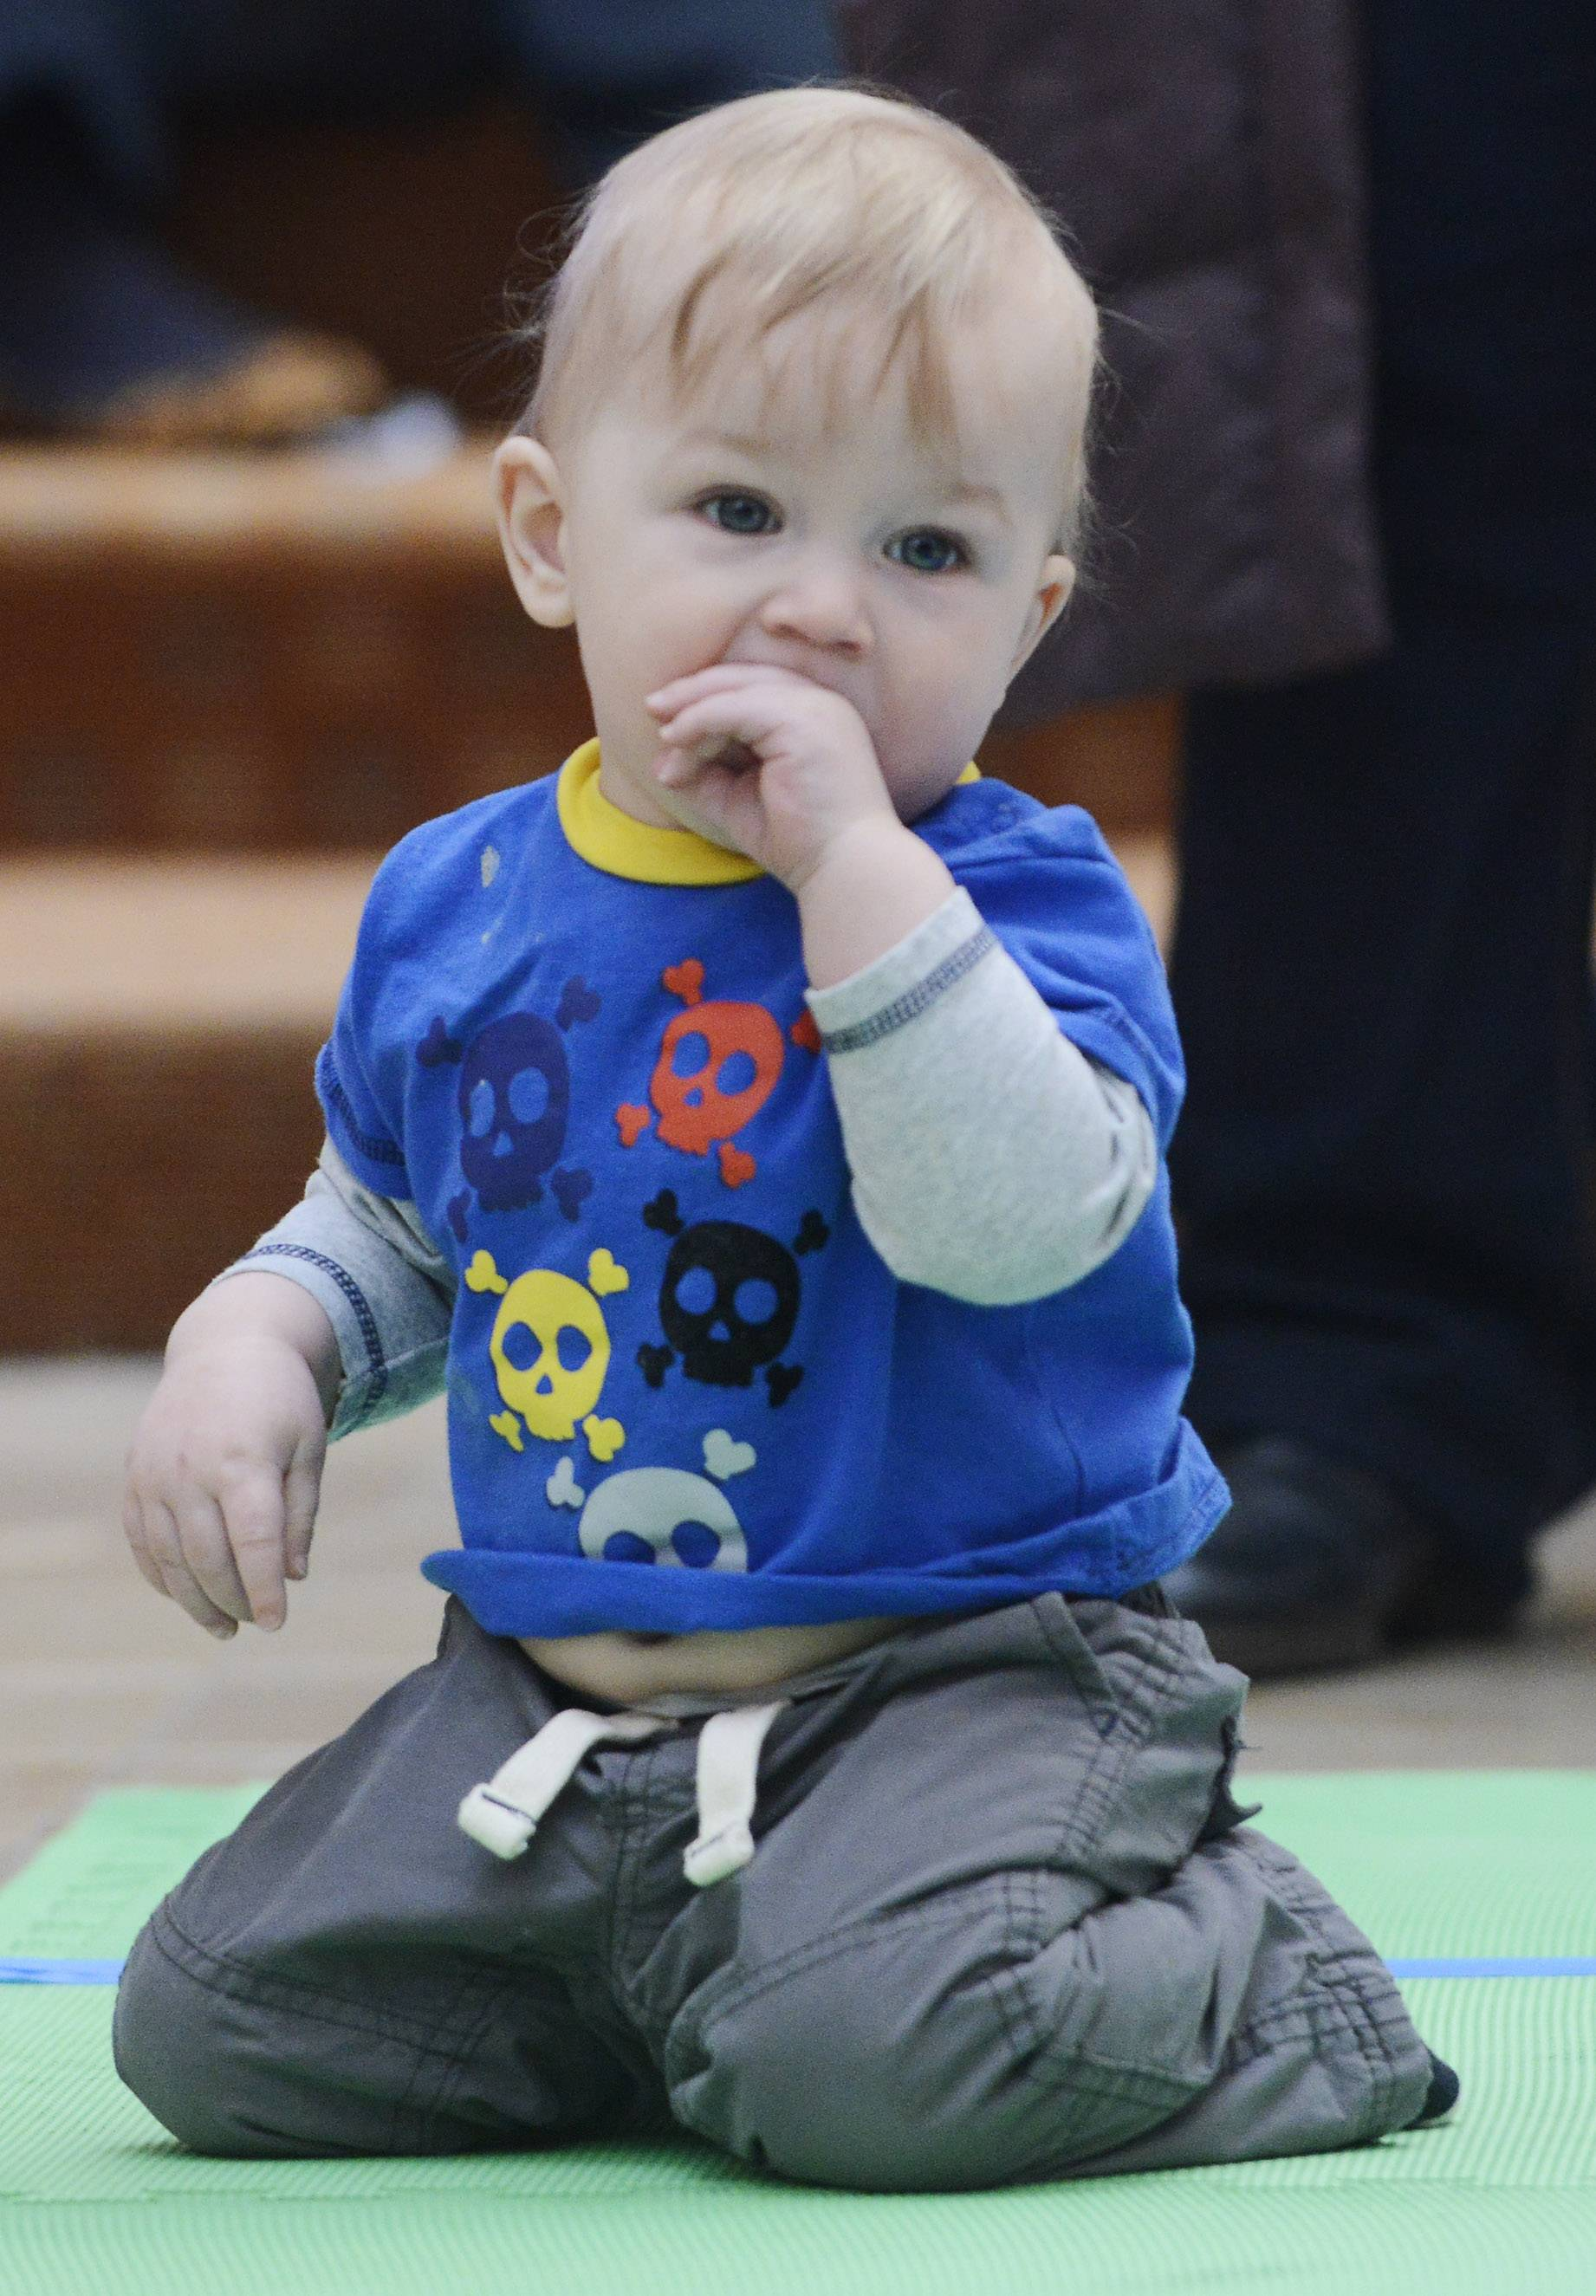 Tristan Potkanski of Chicago, a day shy of his first birthday, didn't quite muster the competitive spirit for the Diaper Derby event Saturday at Woodfield Mall in Schaumburg.